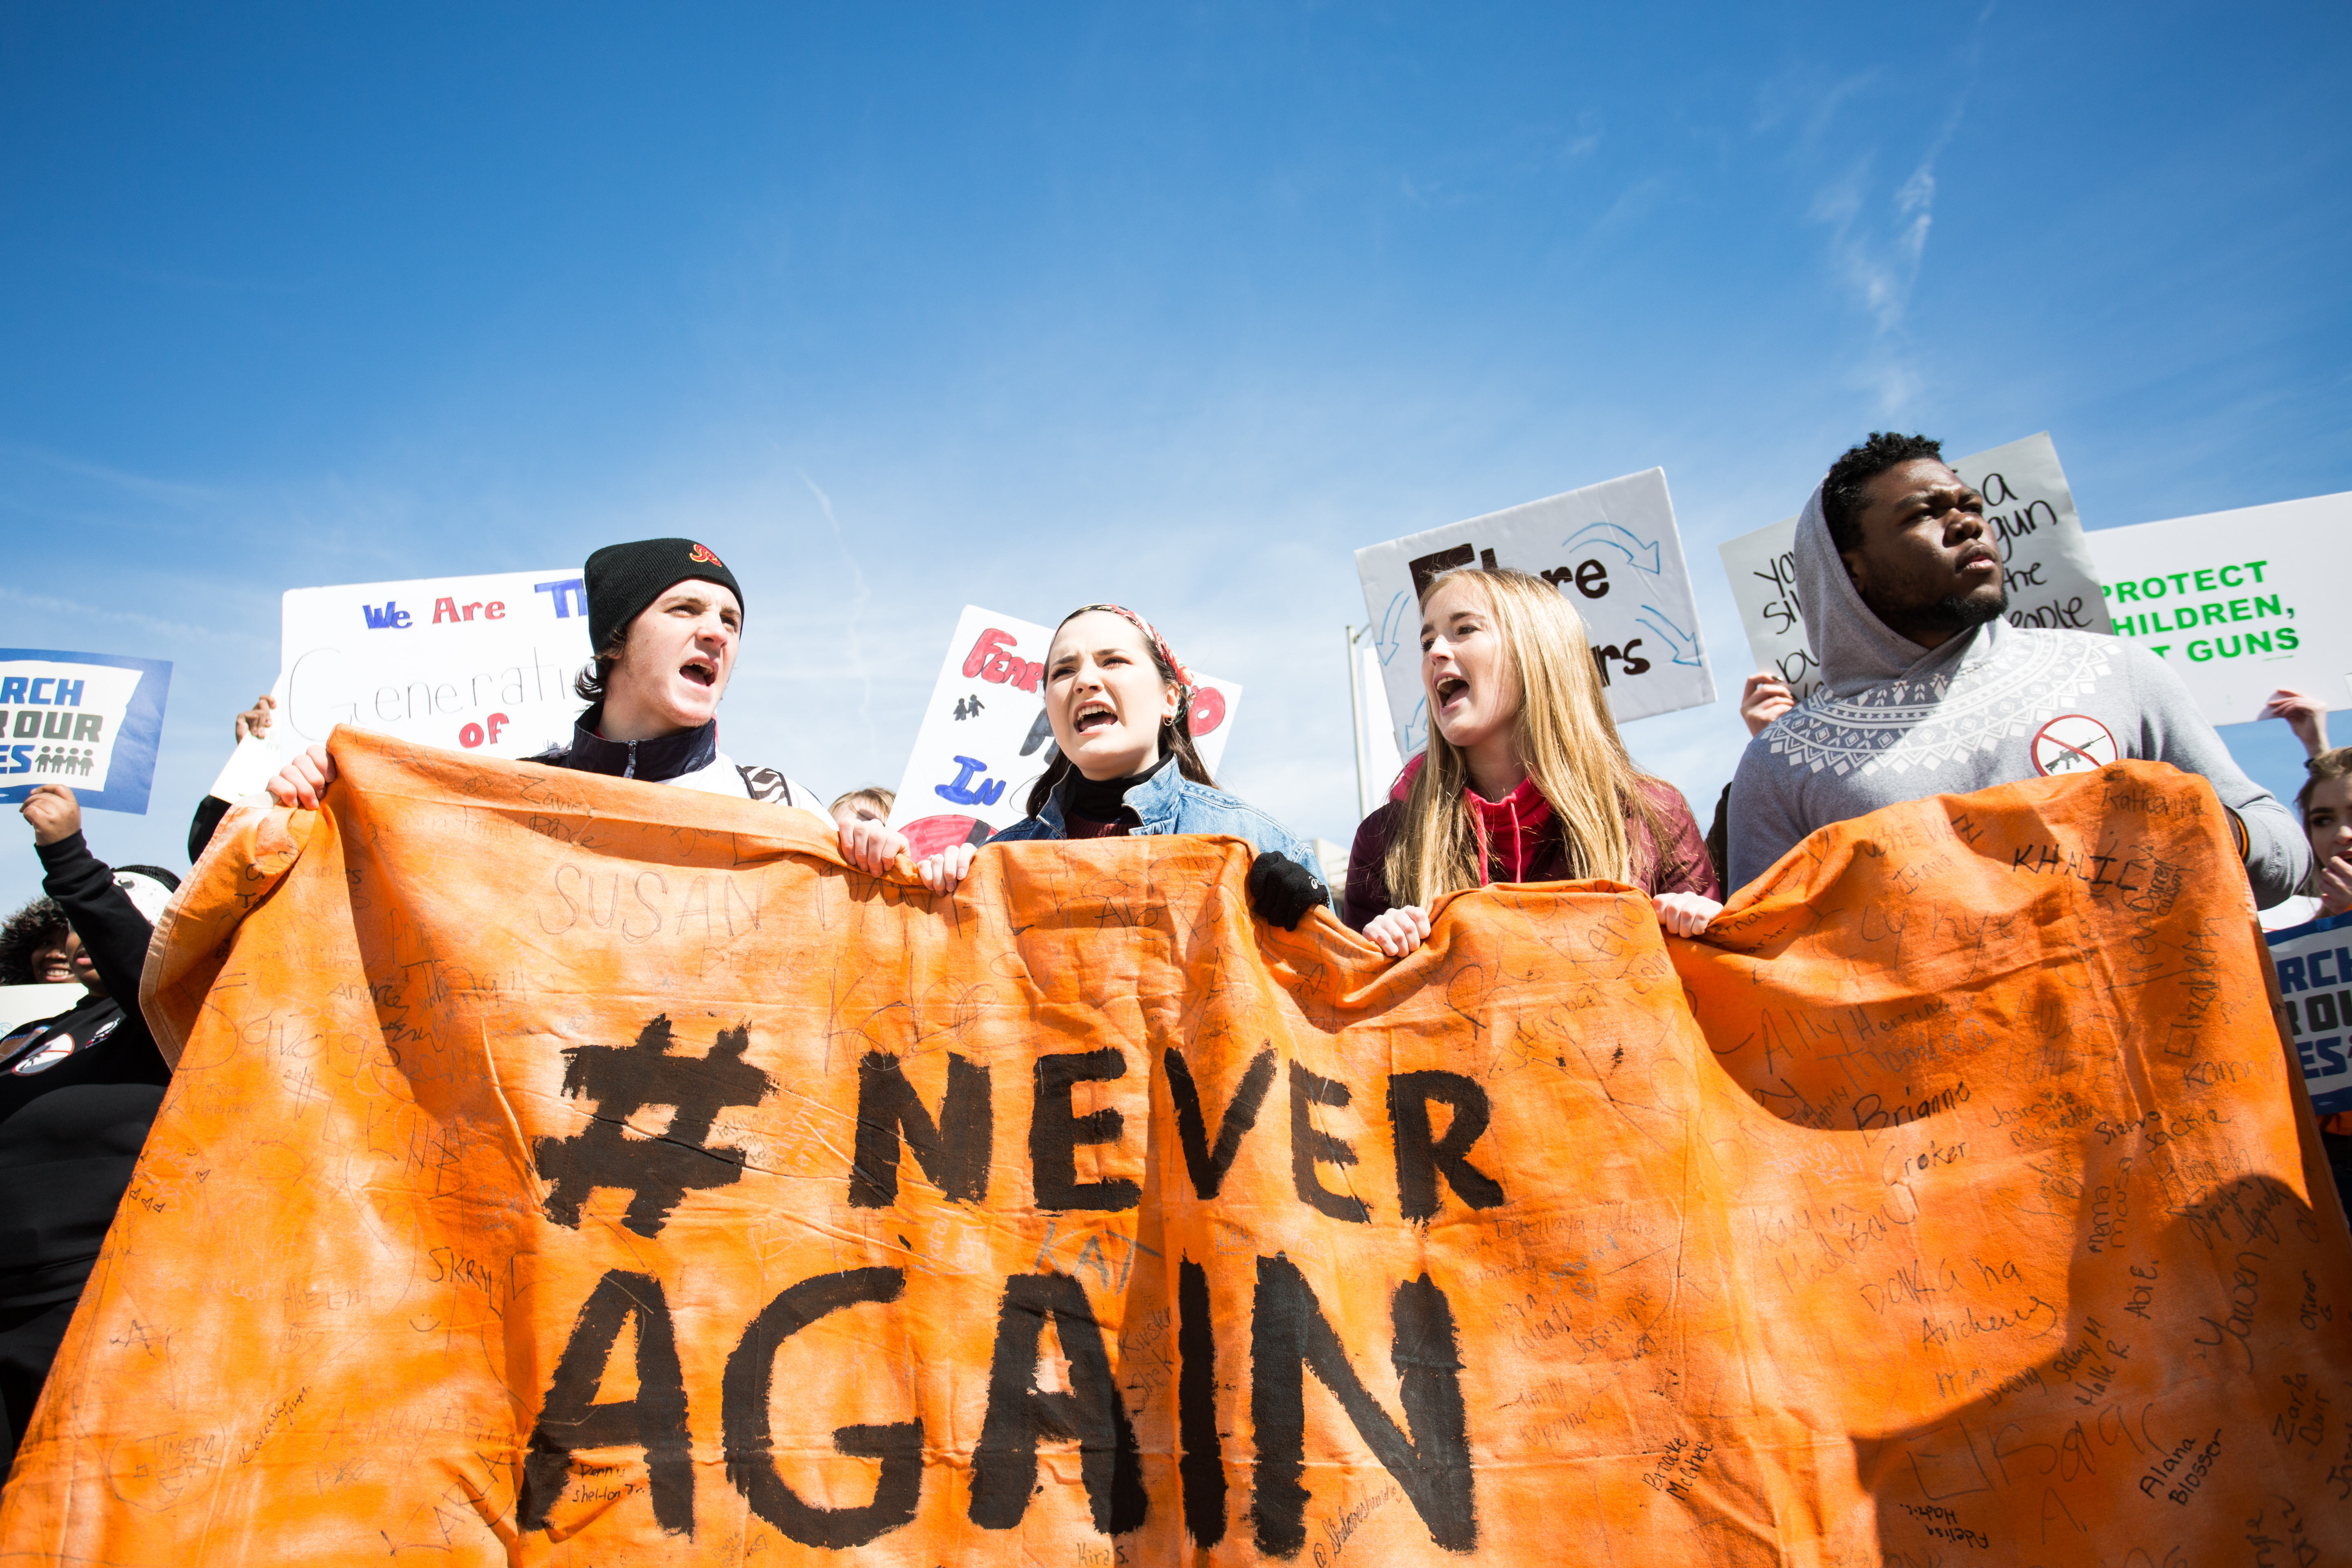 March For Our Lives – RVA